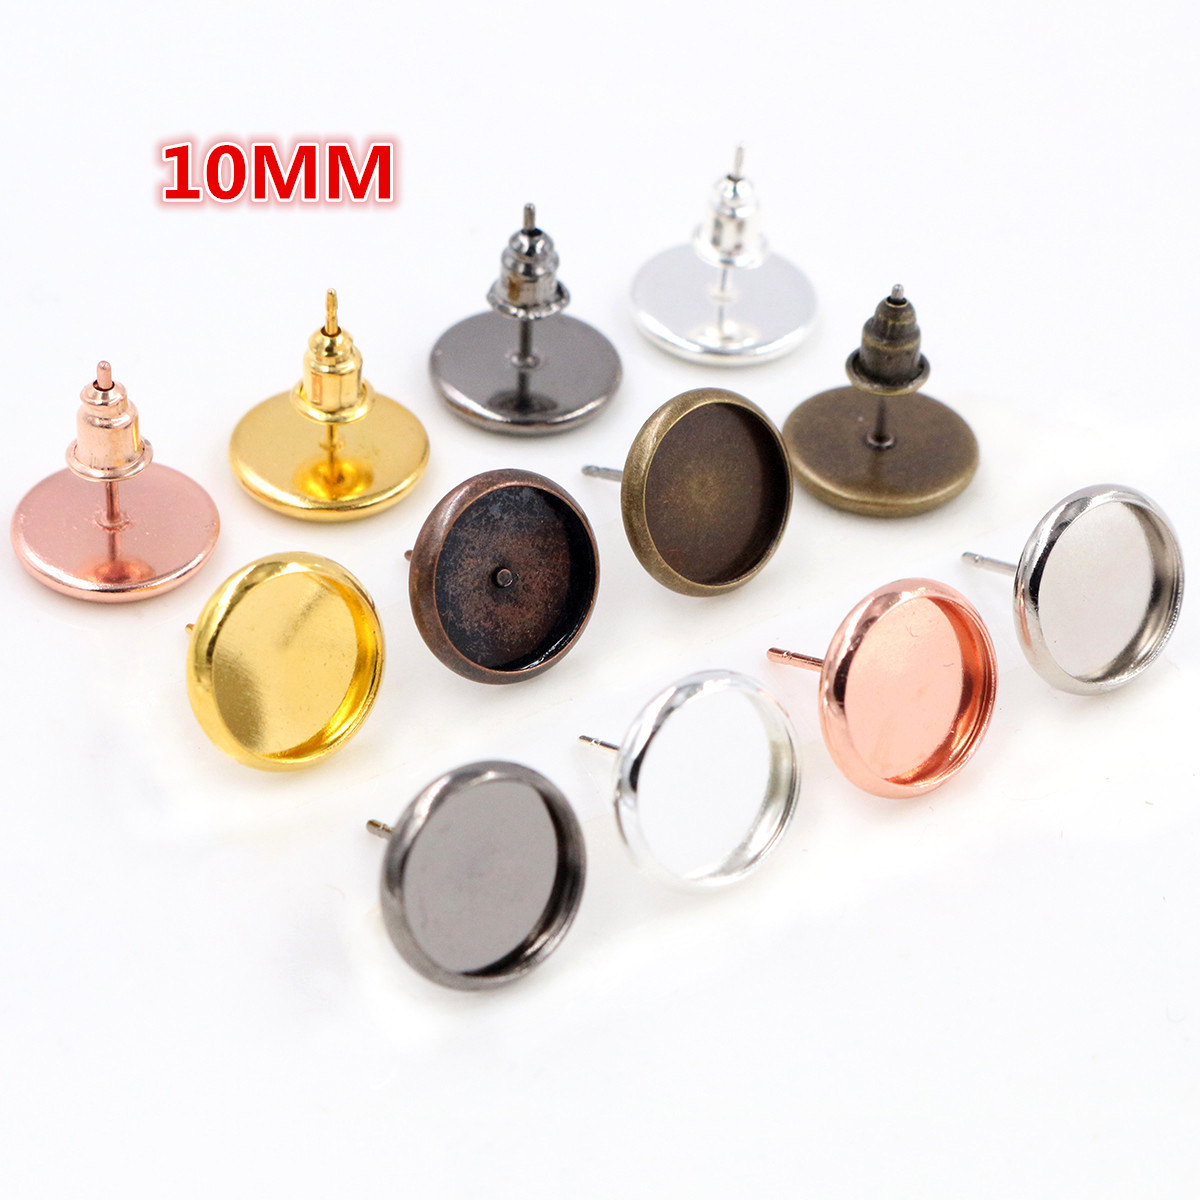 10mm 20pcs 7 Colors Plated Earring Studs,Earrings Blank/Base,Fit 10mm Glass Cabochons,earring Setting;Earring Bezels